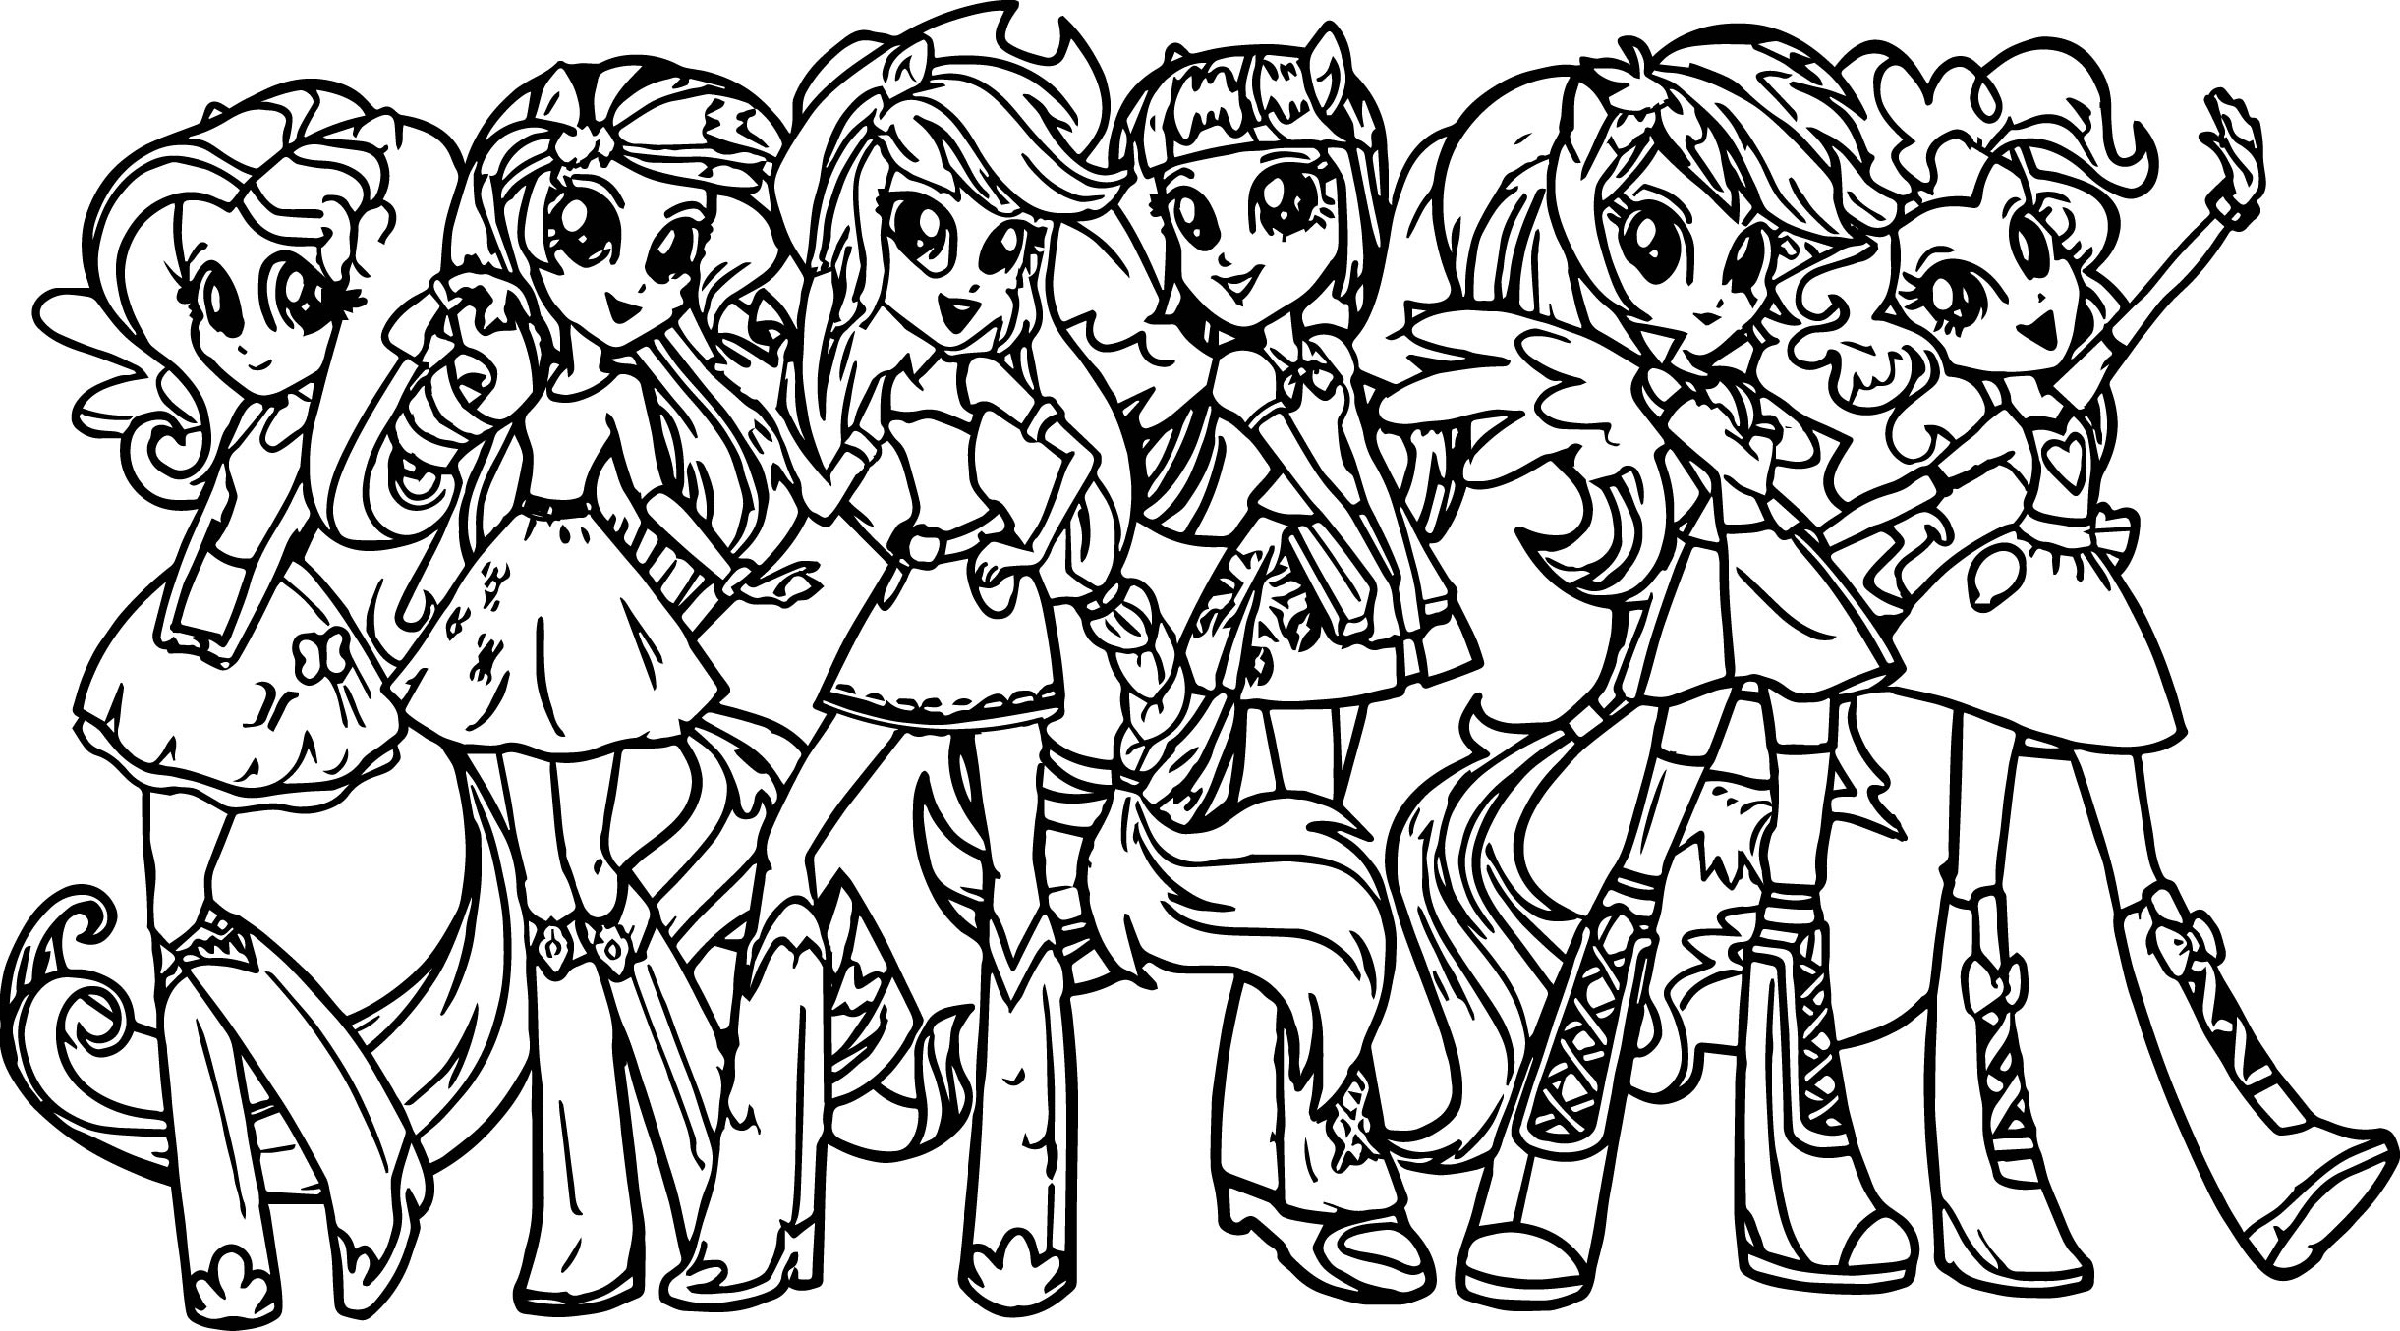 my little pony coloring printables free printable my little pony coloring pages for kids pony printables little coloring my